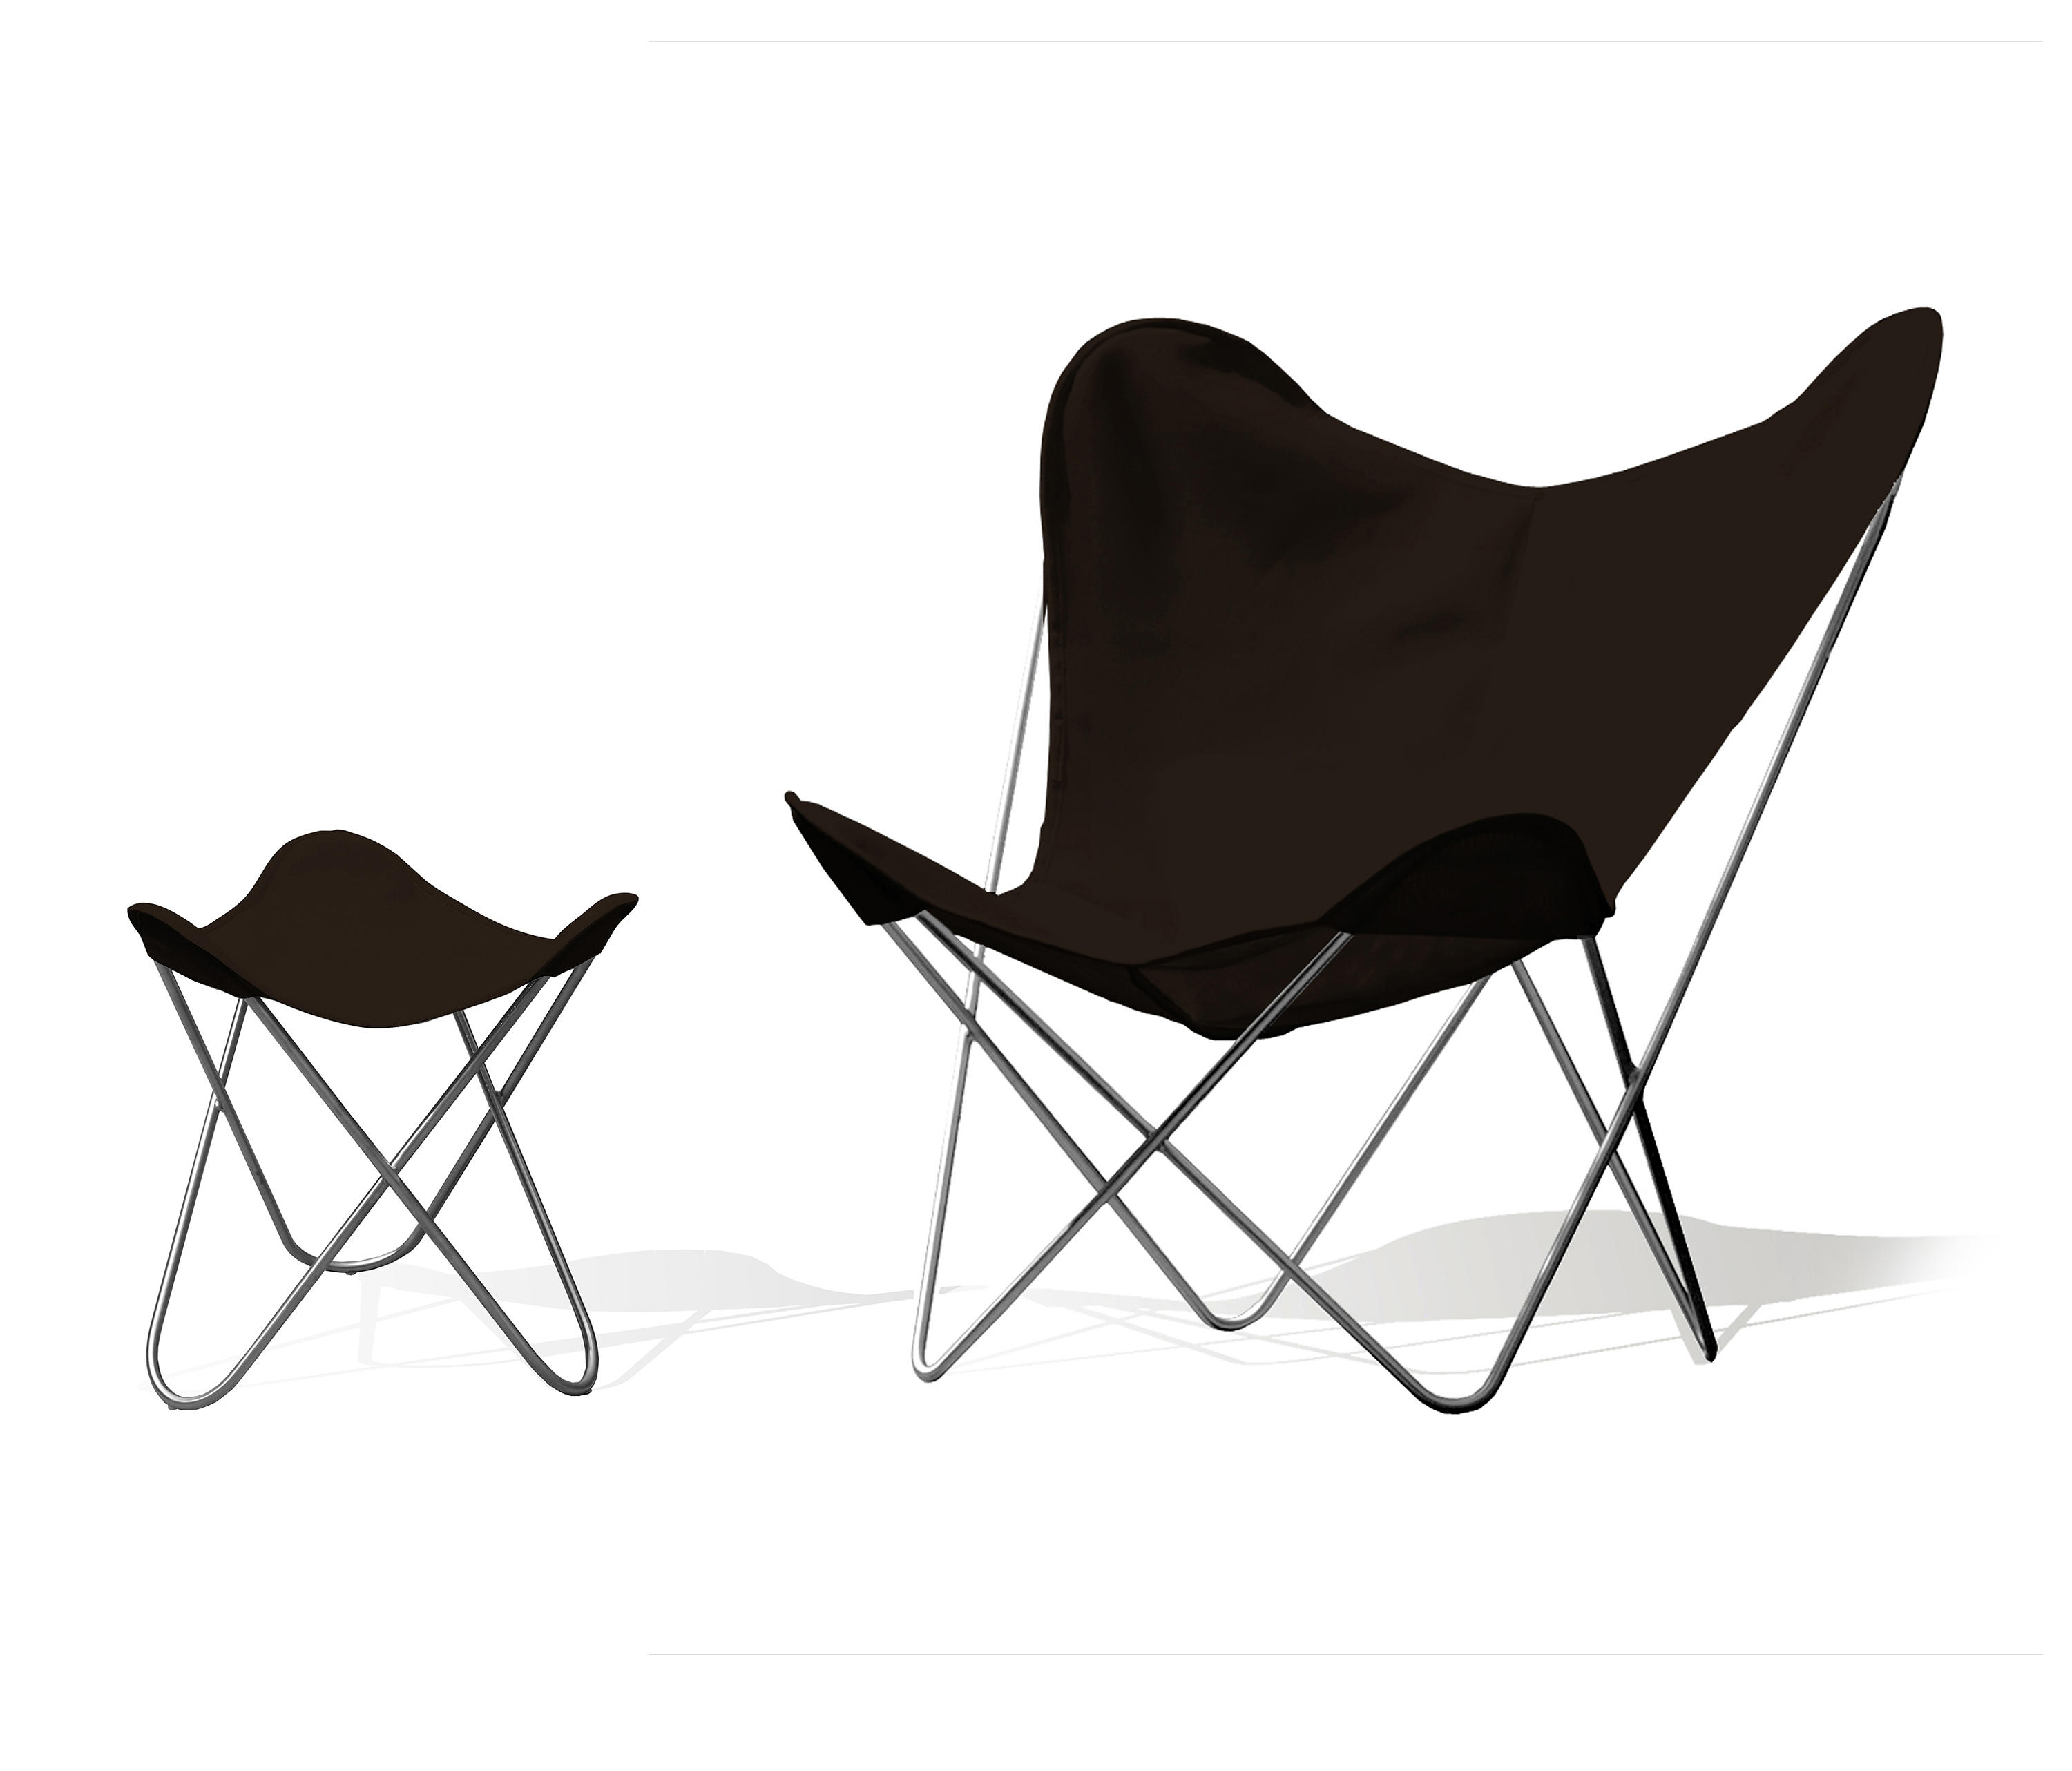 Enjoyable Hardoy Butterfly Chair Outdoor Batyline Anthracite With Ocoug Best Dining Table And Chair Ideas Images Ocougorg